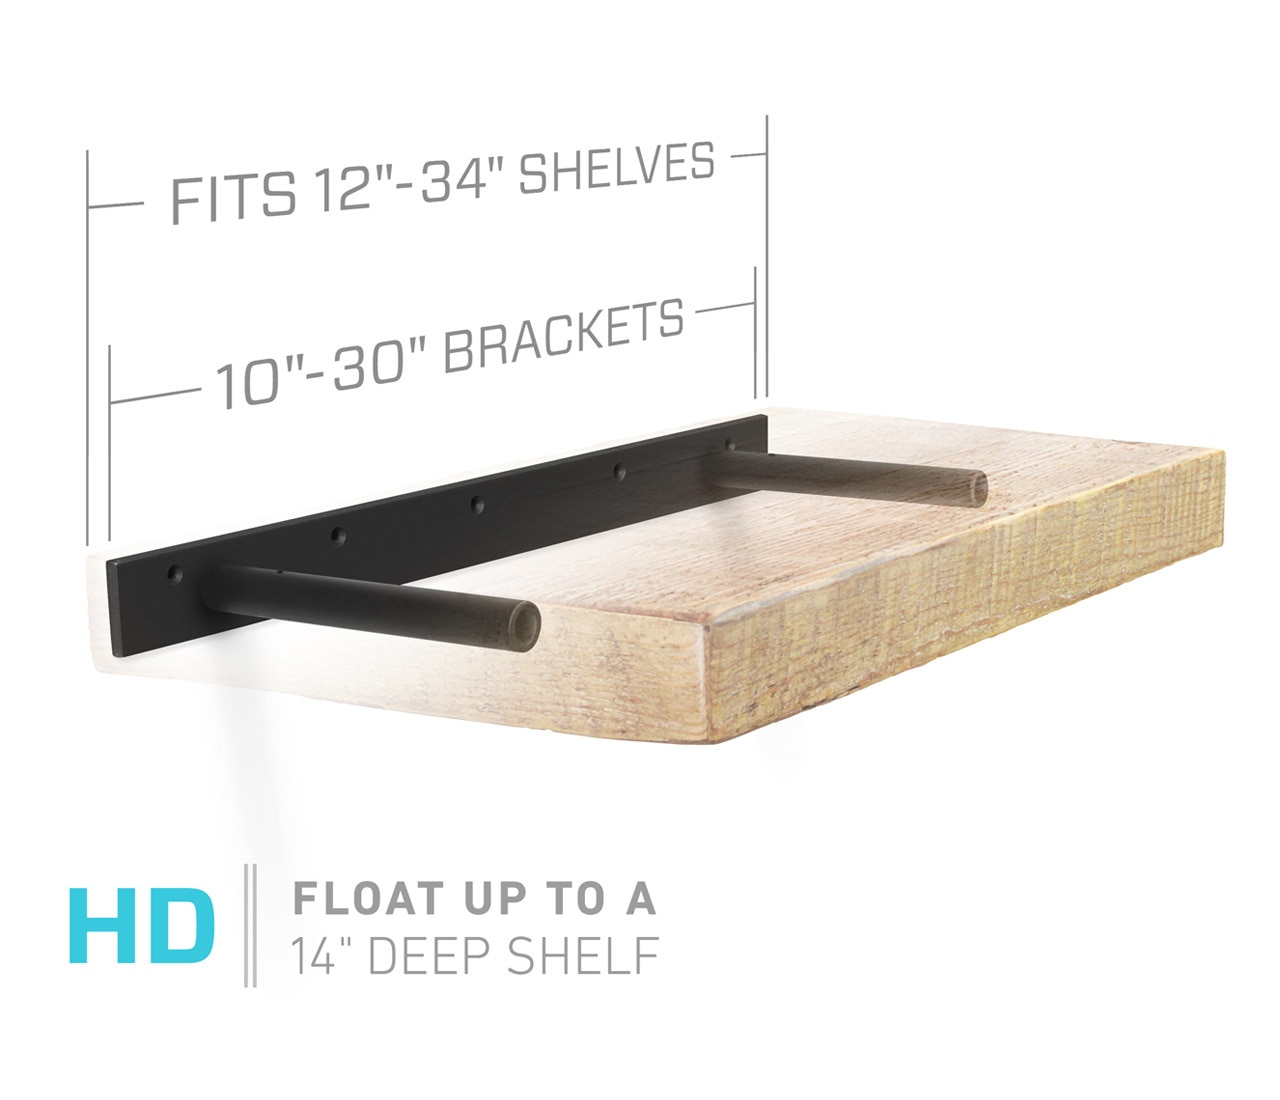 floating shelf bracket fits inch shelves deep our heavy duty two bar brackets float shoe for closets ikea metal bathroom shelving unit breakfast rockler blind supports sky box